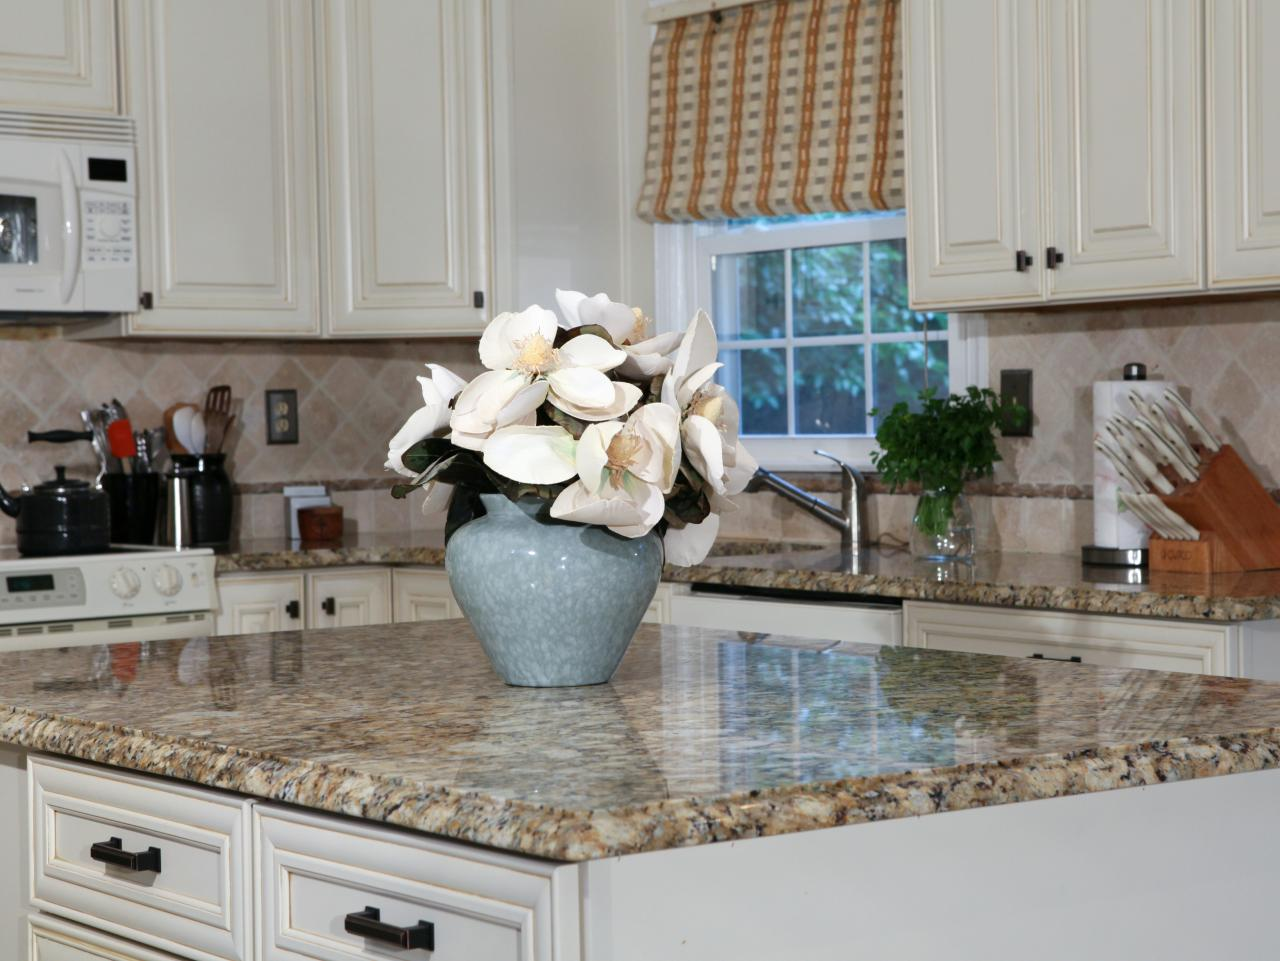 Completed Granite Island Countertop